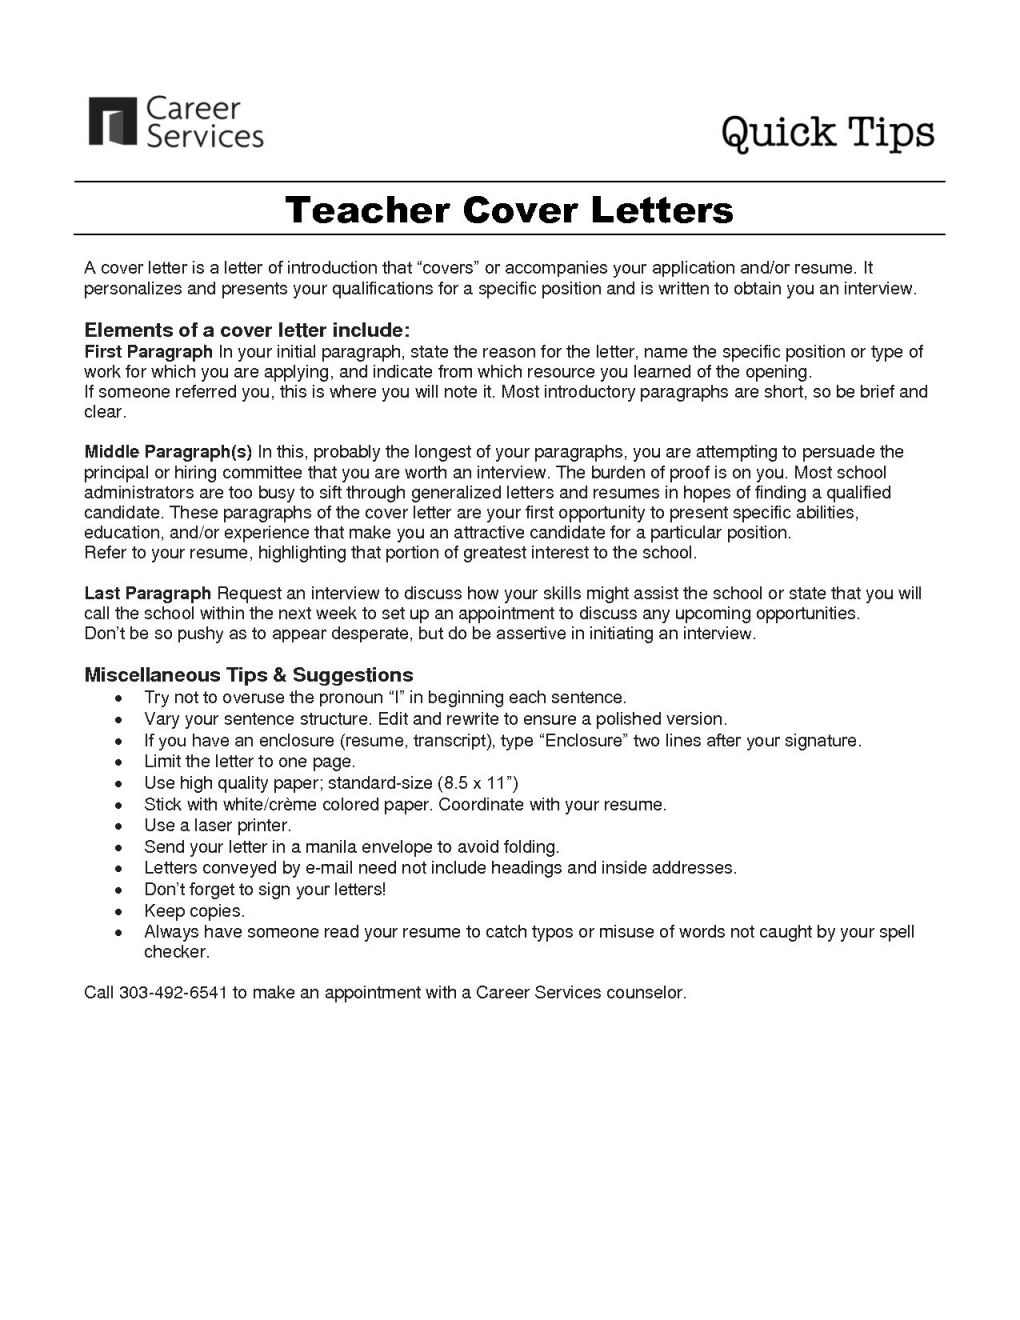 Letter Of Introduction Rfp - How to Write an RFP Cover Letter